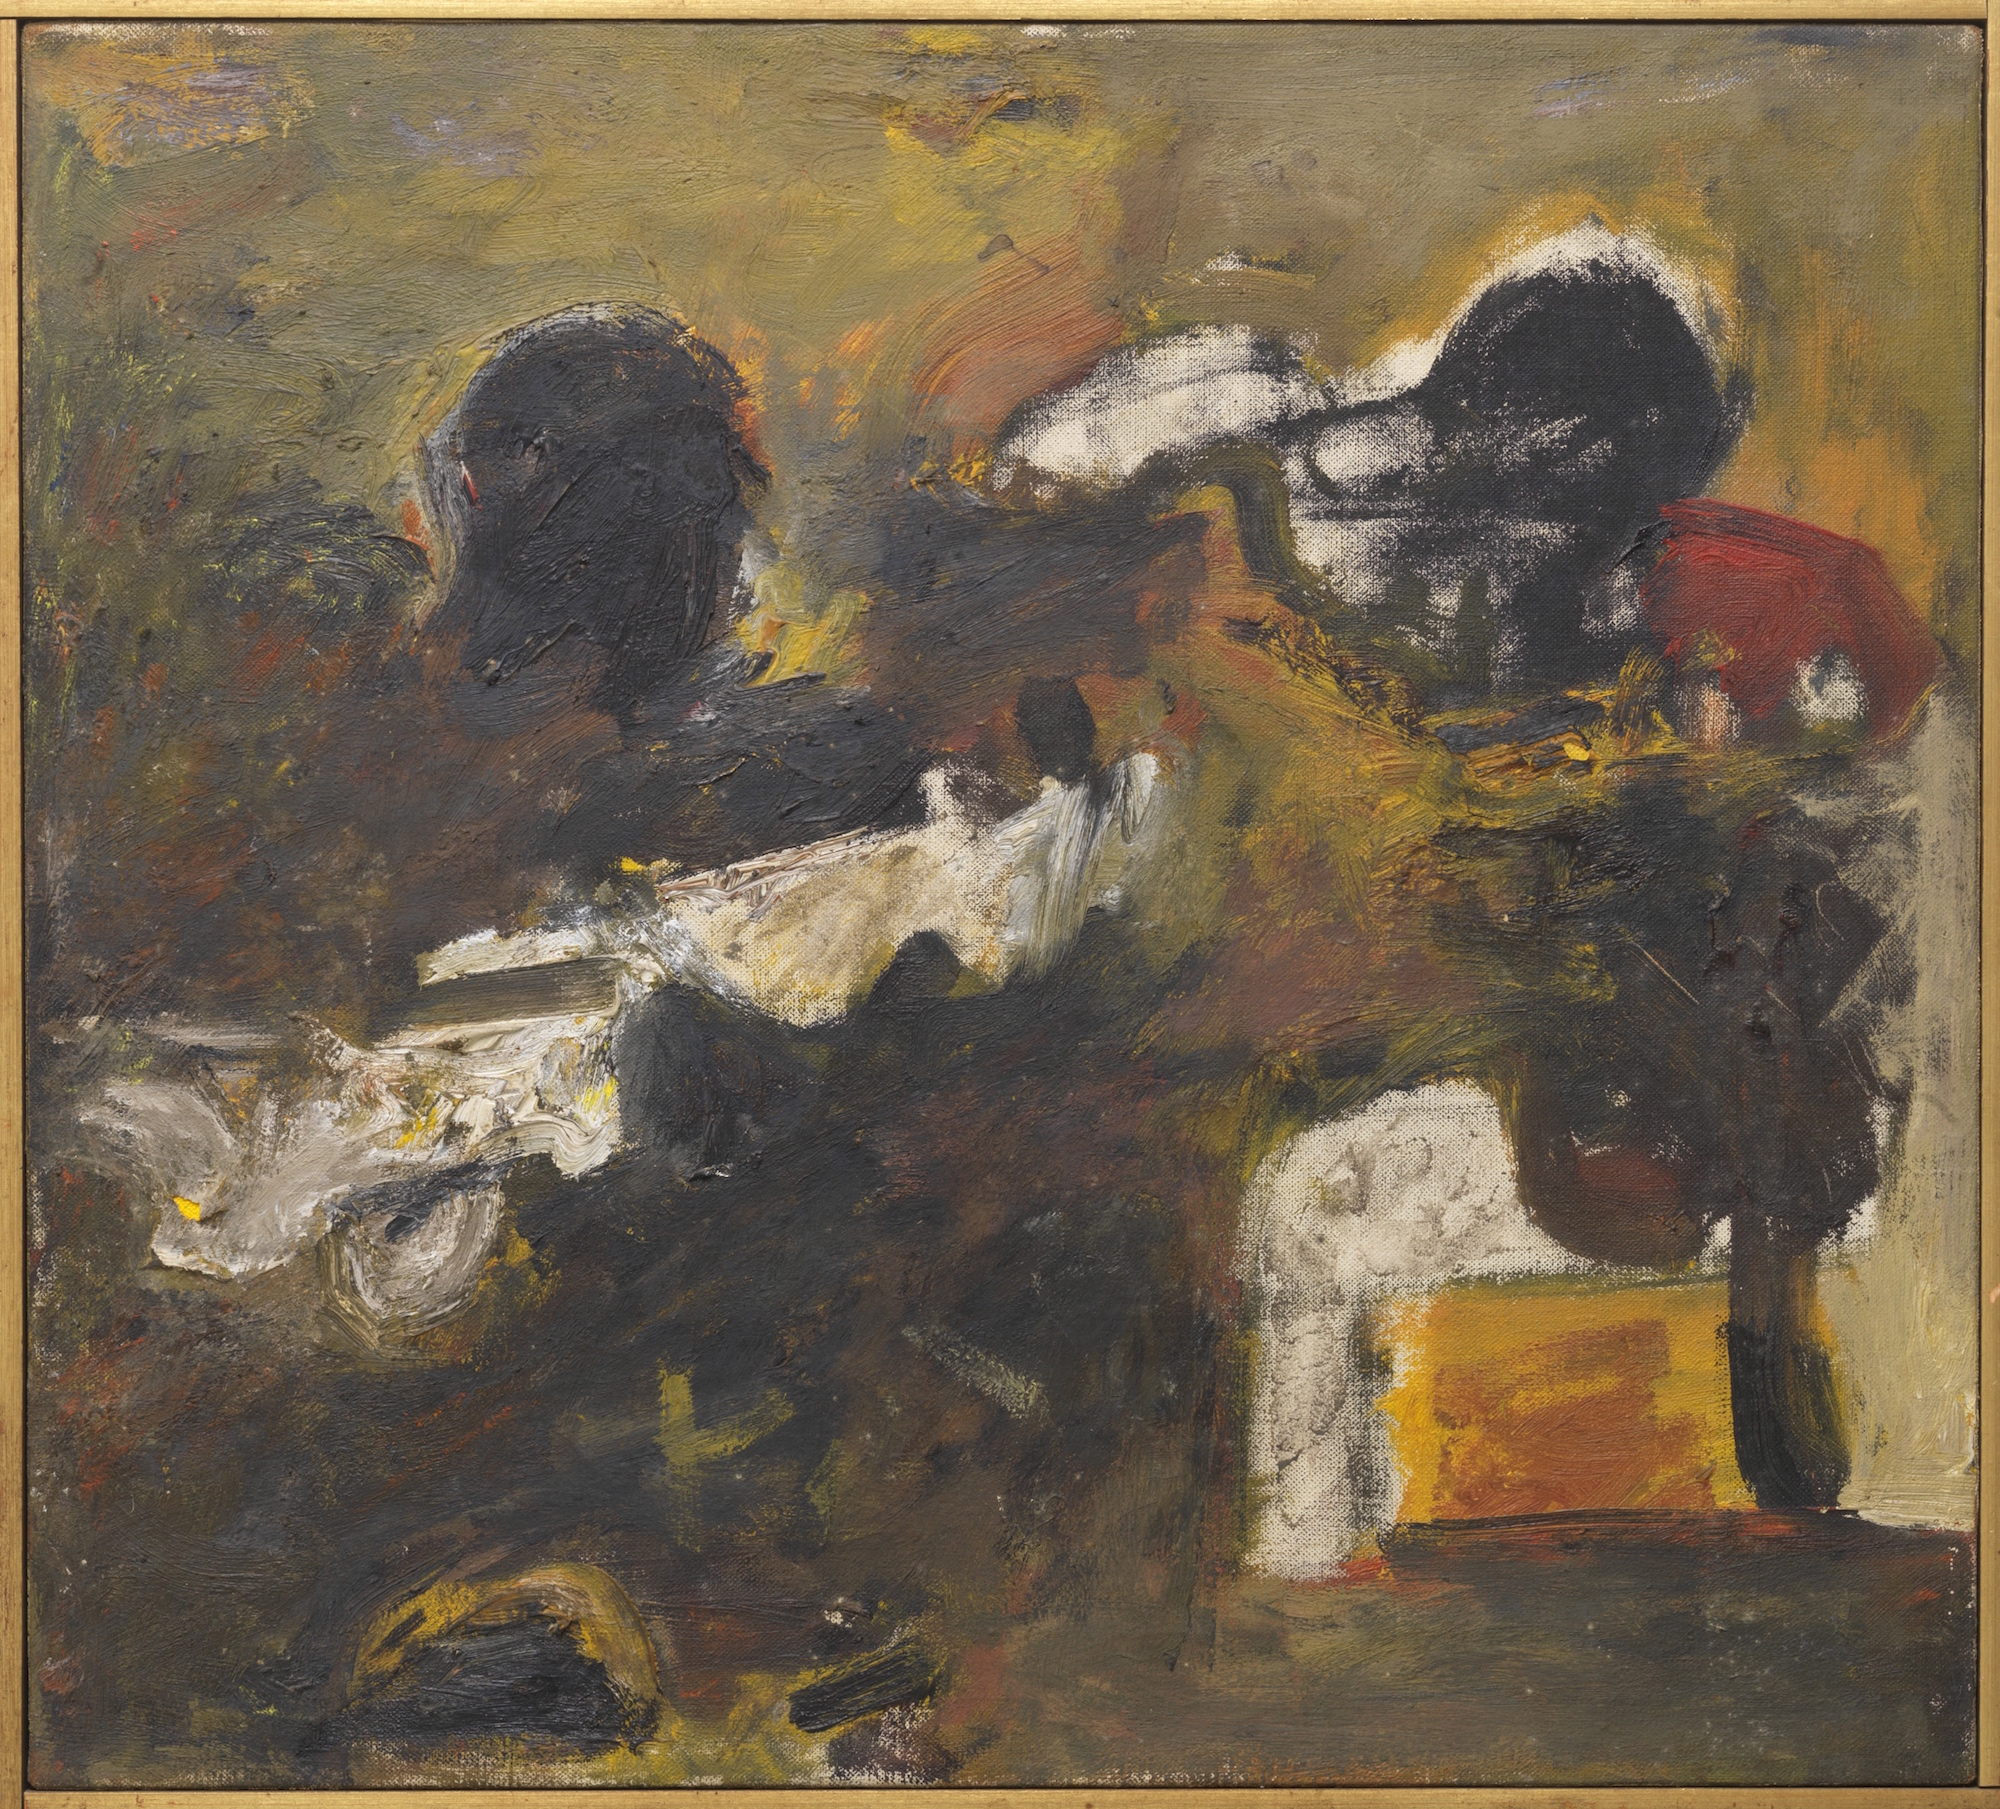 Milton Resnick  Untitled , 1957 Oil on canvas 18 x 19.75 inches